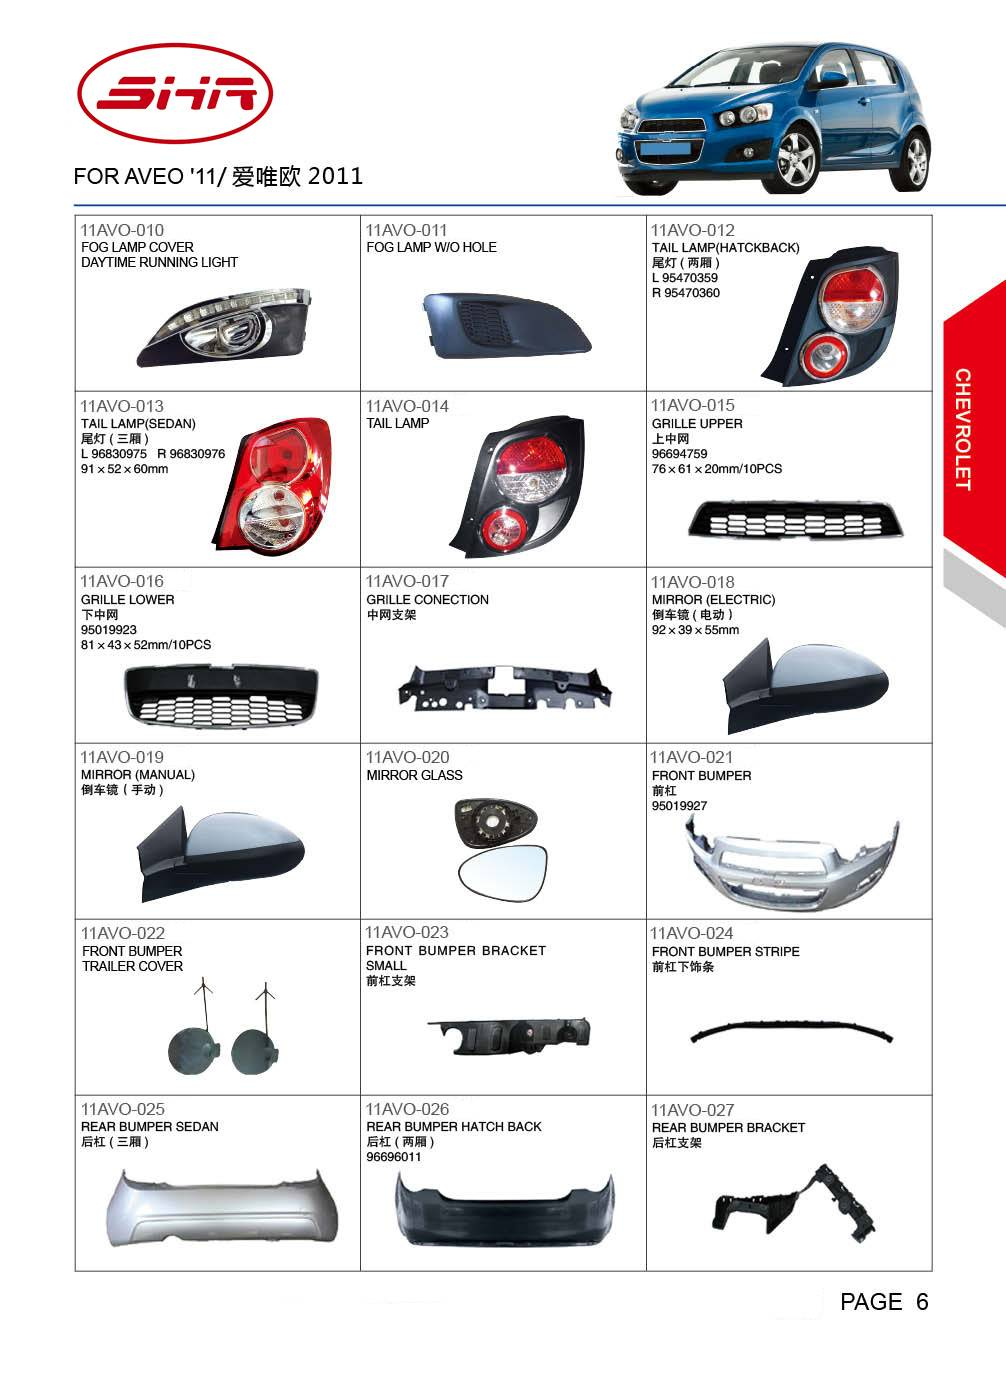 chevrolet 2011 Aveo aftermarket spare parts